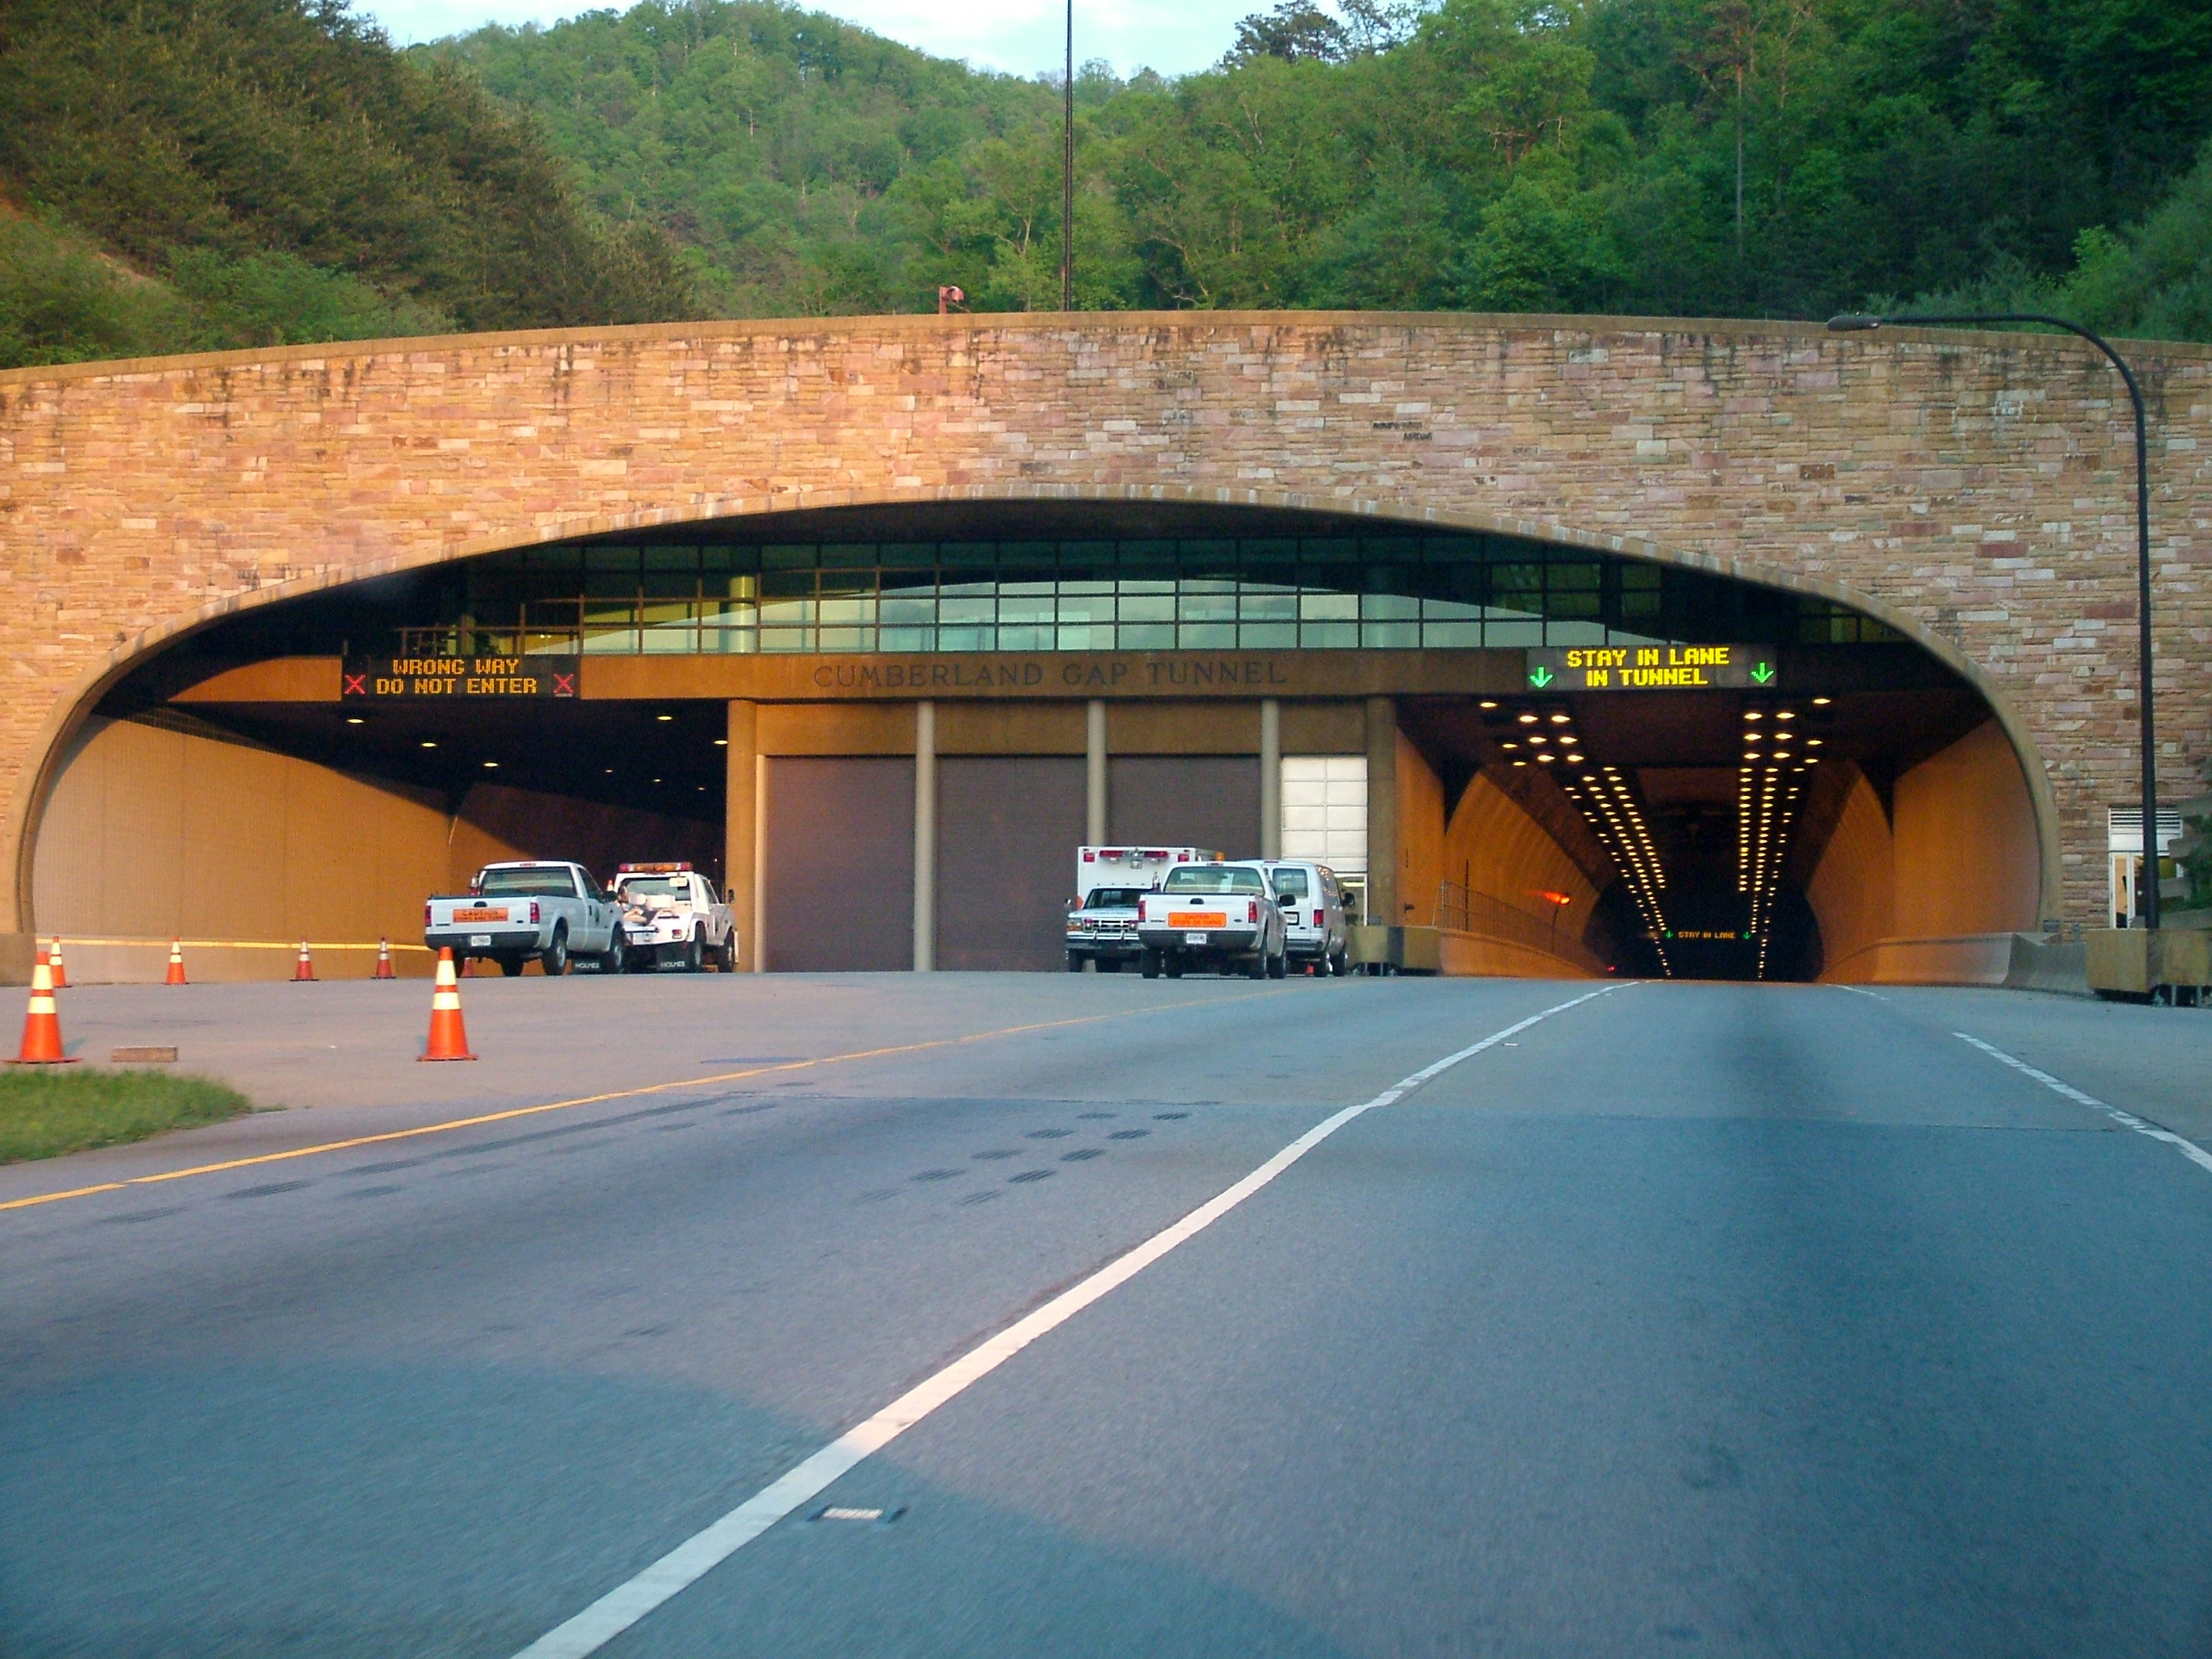 cumberland gap dating The cumberland gap is a narrow pass through the long ridge of the cumberland mountains, within the appalachian mountains.